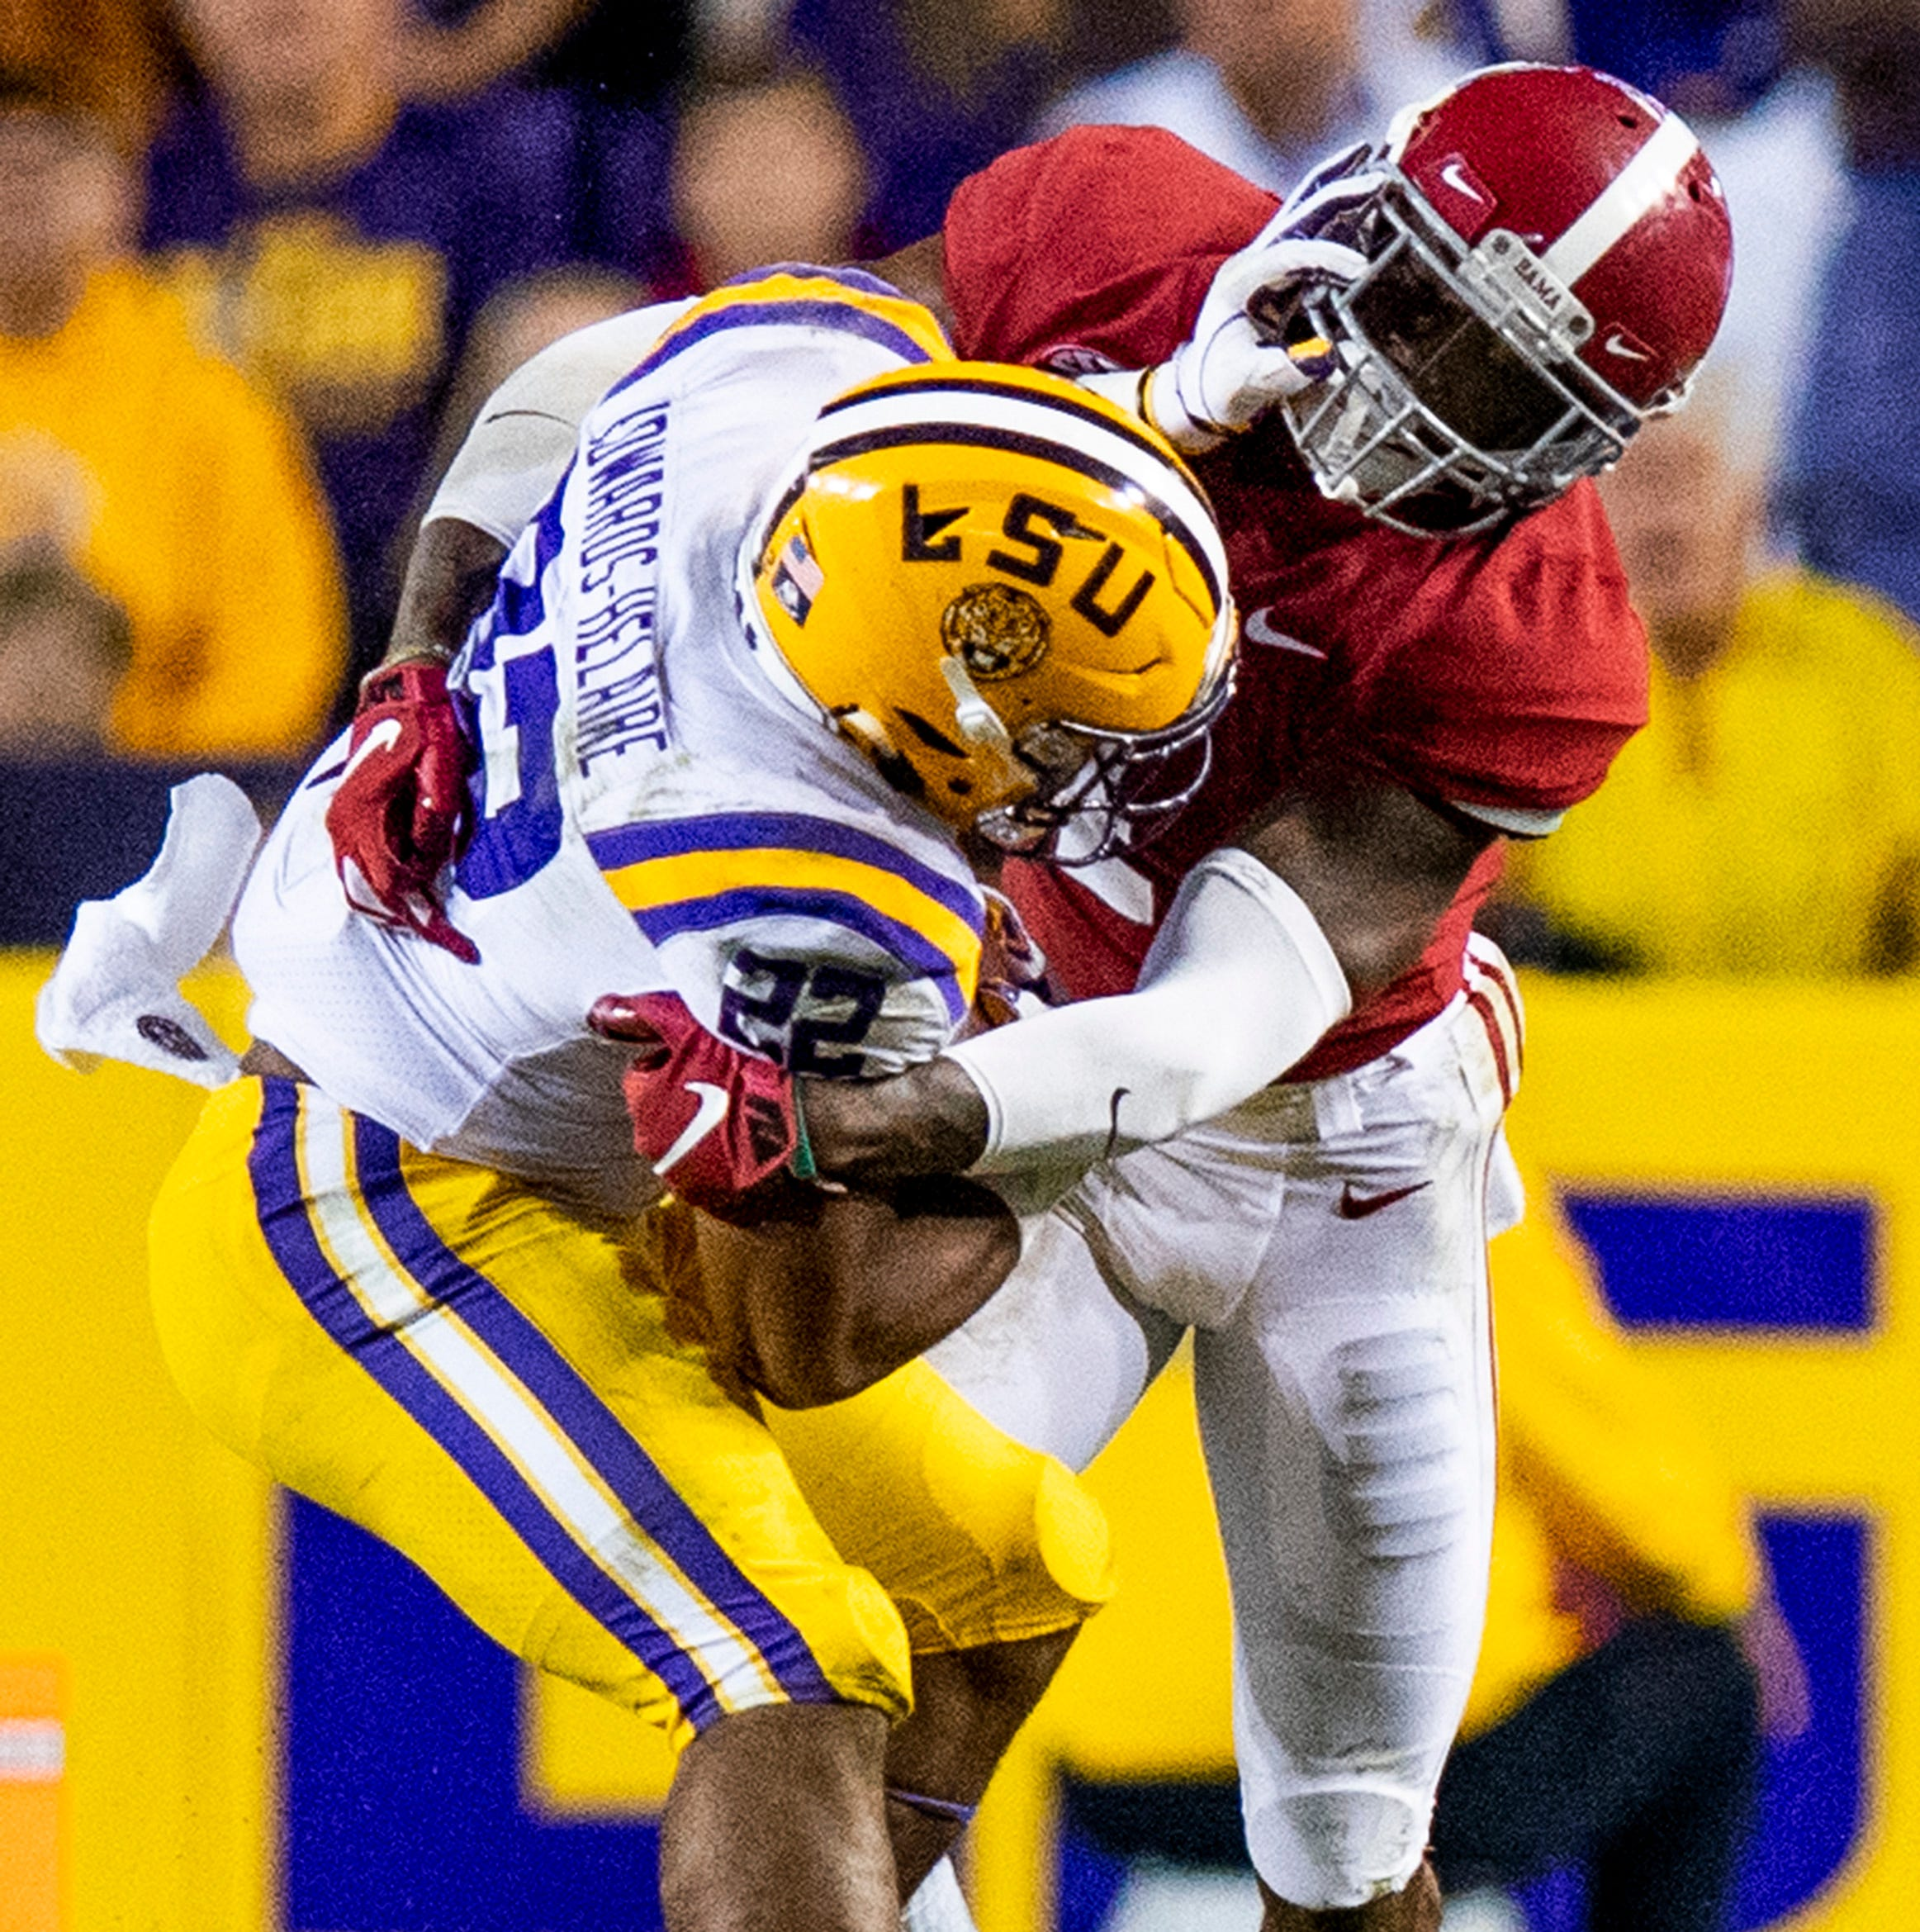 Crimson Tide keep coming as LSU proves its no match for Alabama once again